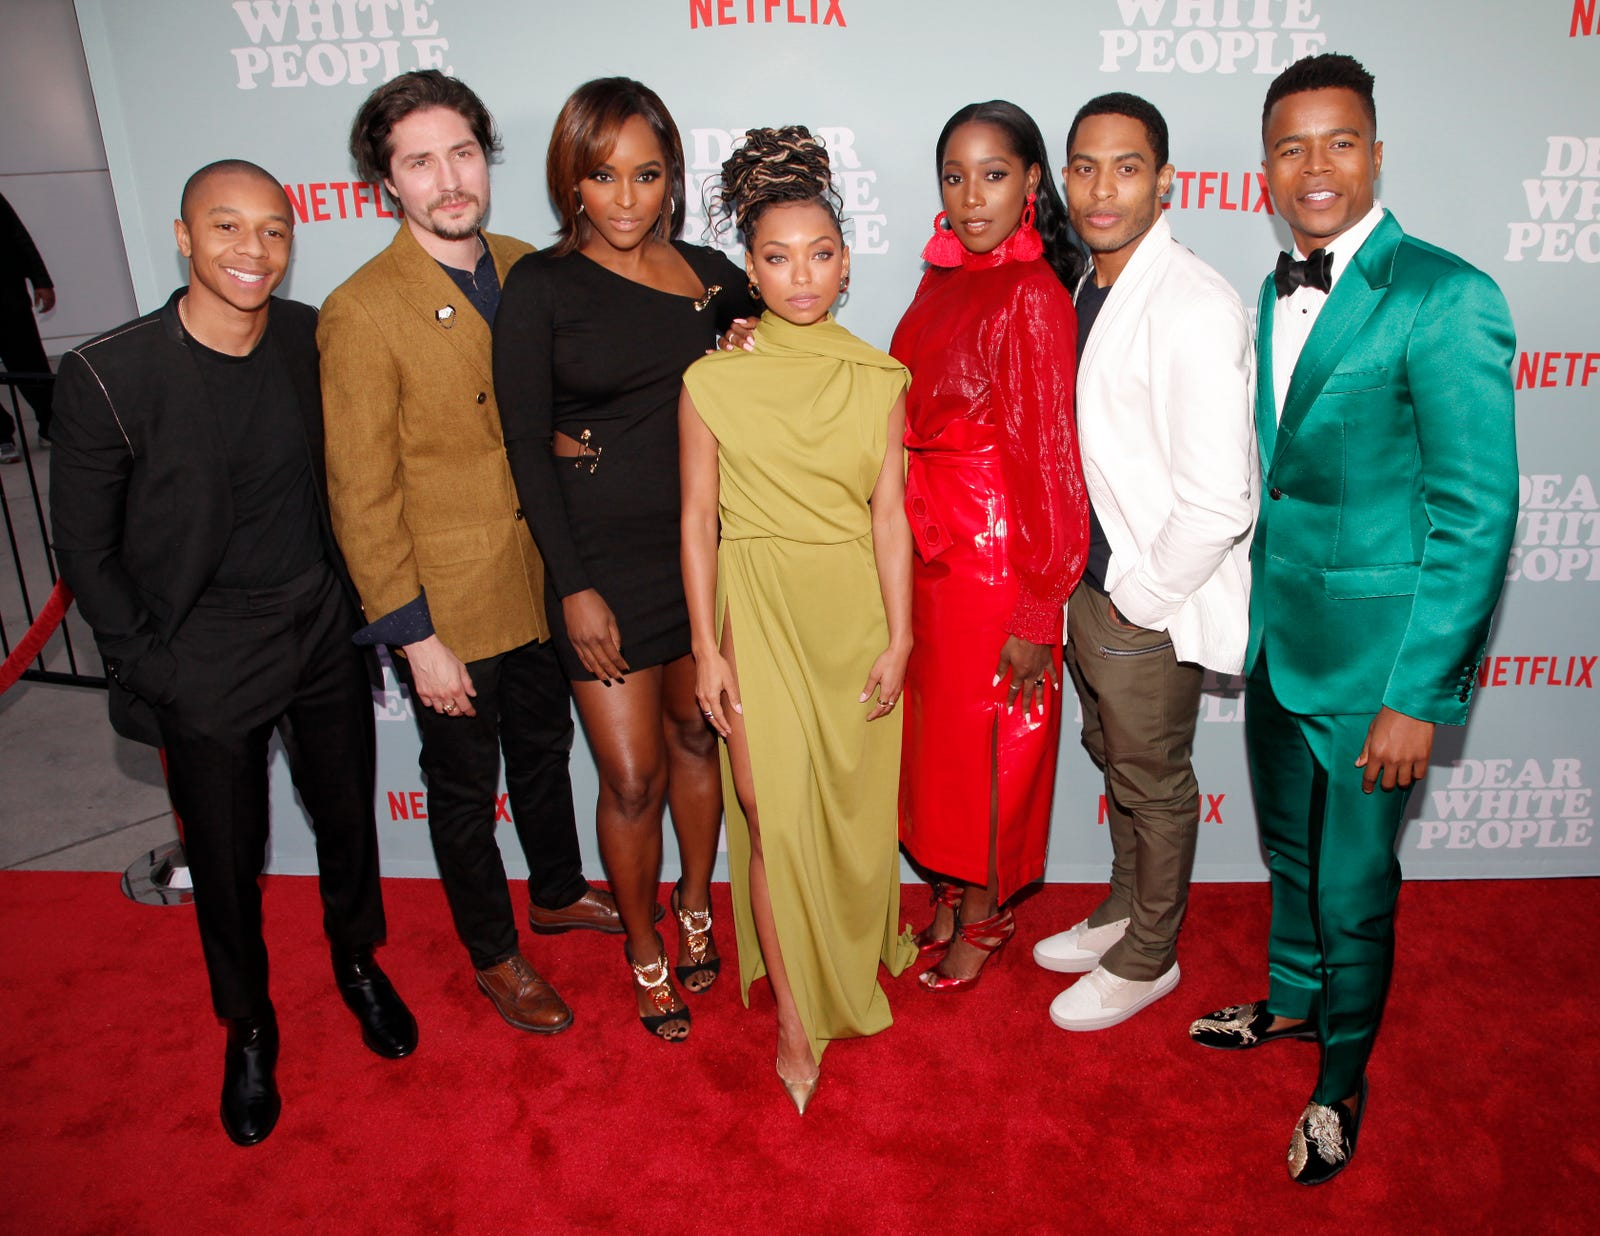 College reunion: DeRon Horton, John Patrick Amedori, Antoinette Robertson, Logan Browning, Ashley Blaine Featherson, Brandon P Bell and Marque Richardson